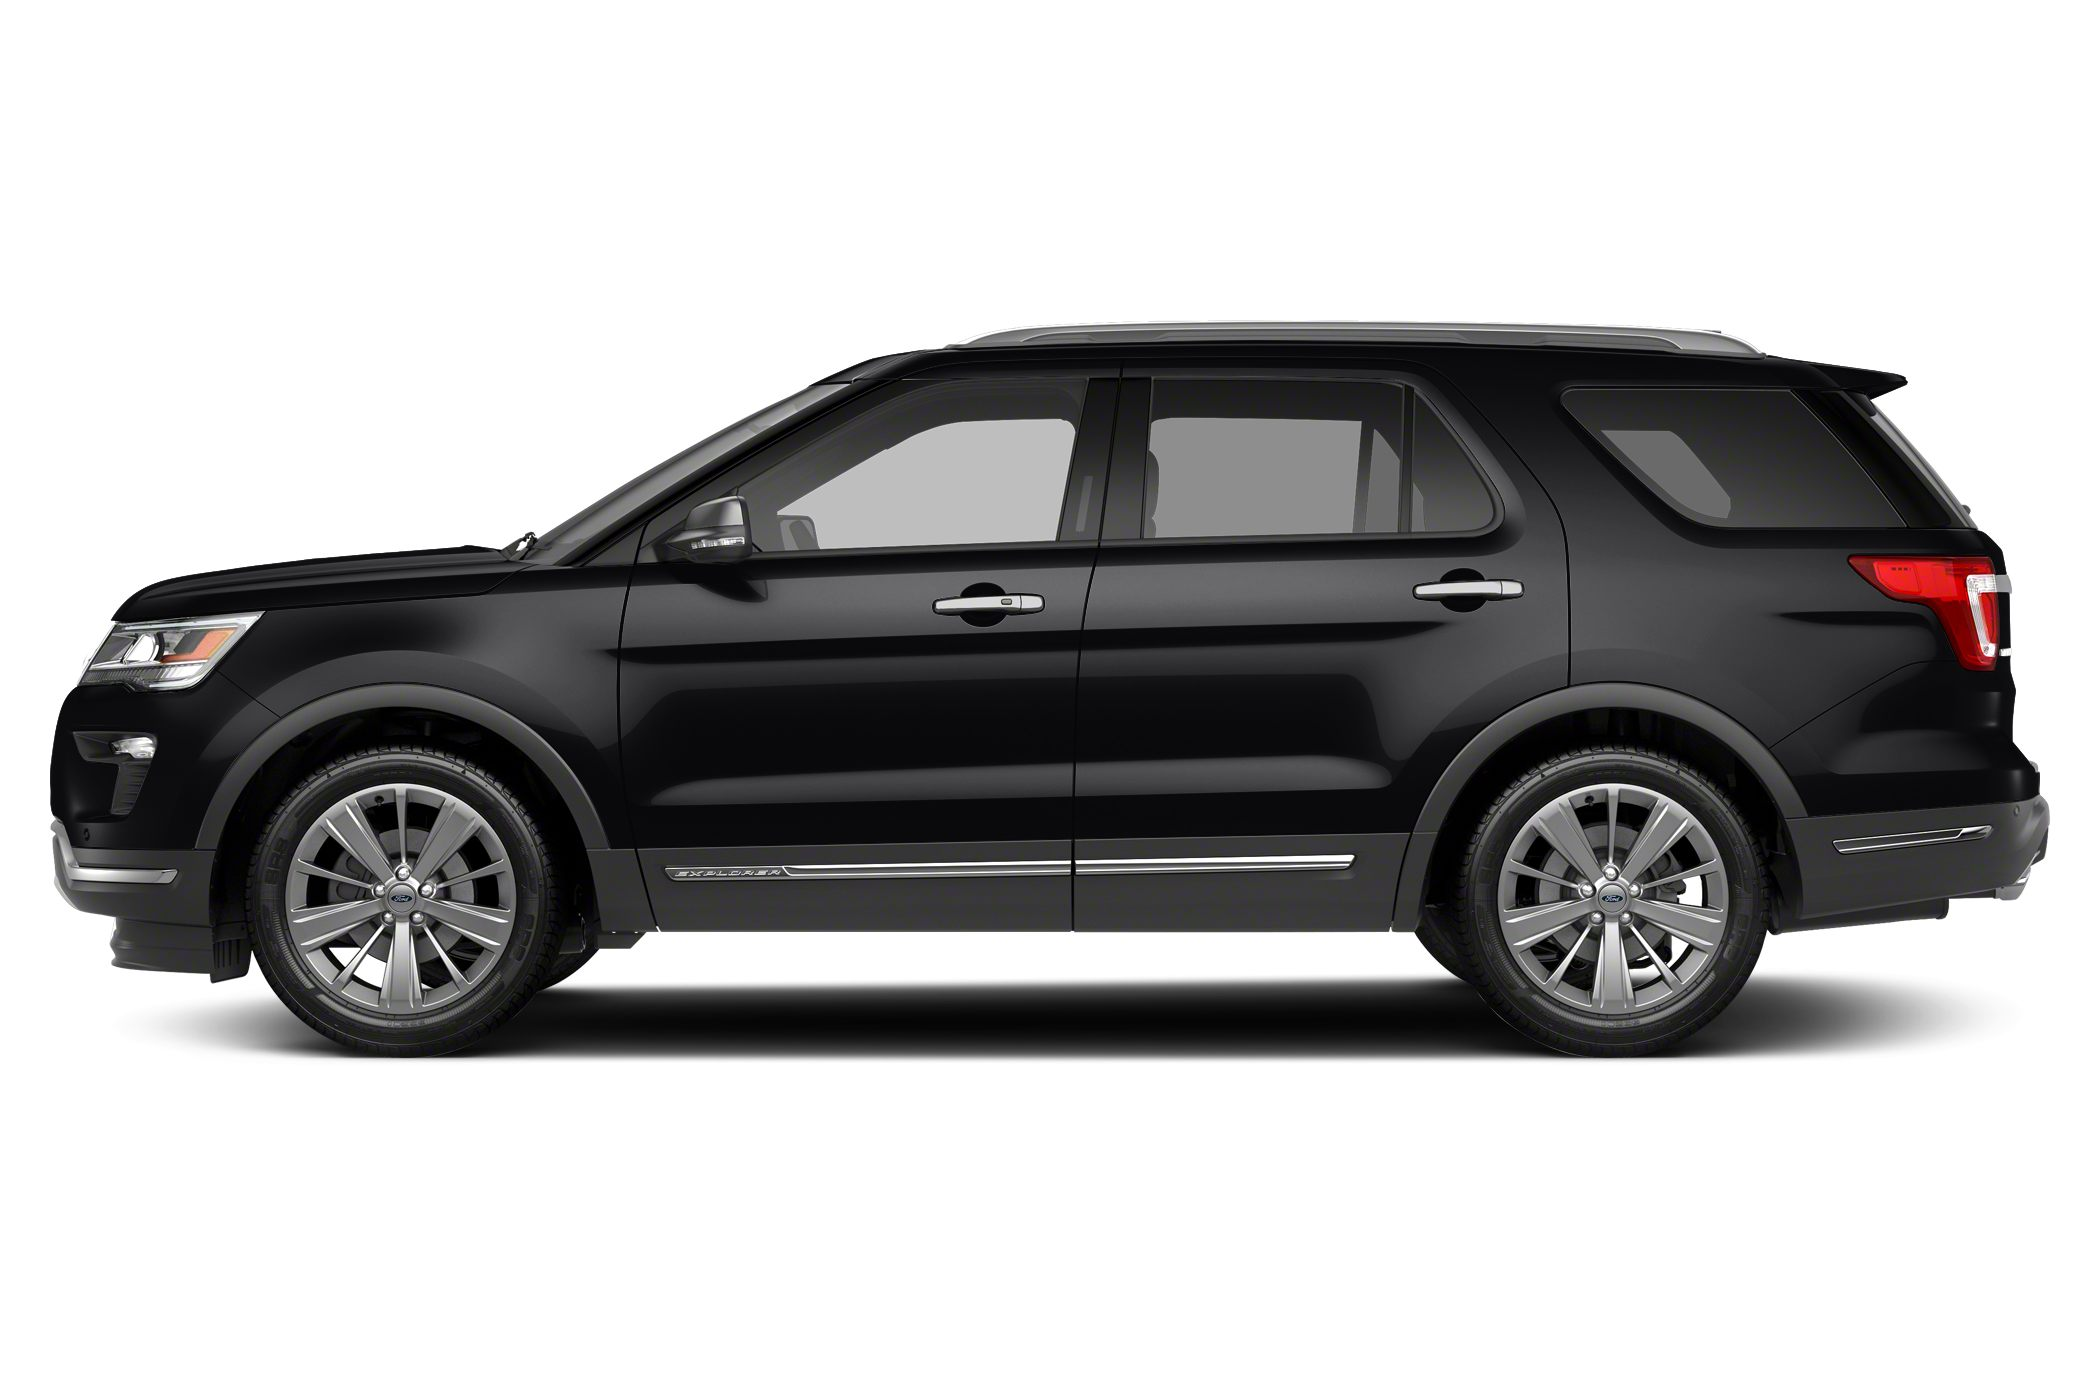 2018 Ford Explorer Deals, Prices, Incentives & Leases ...